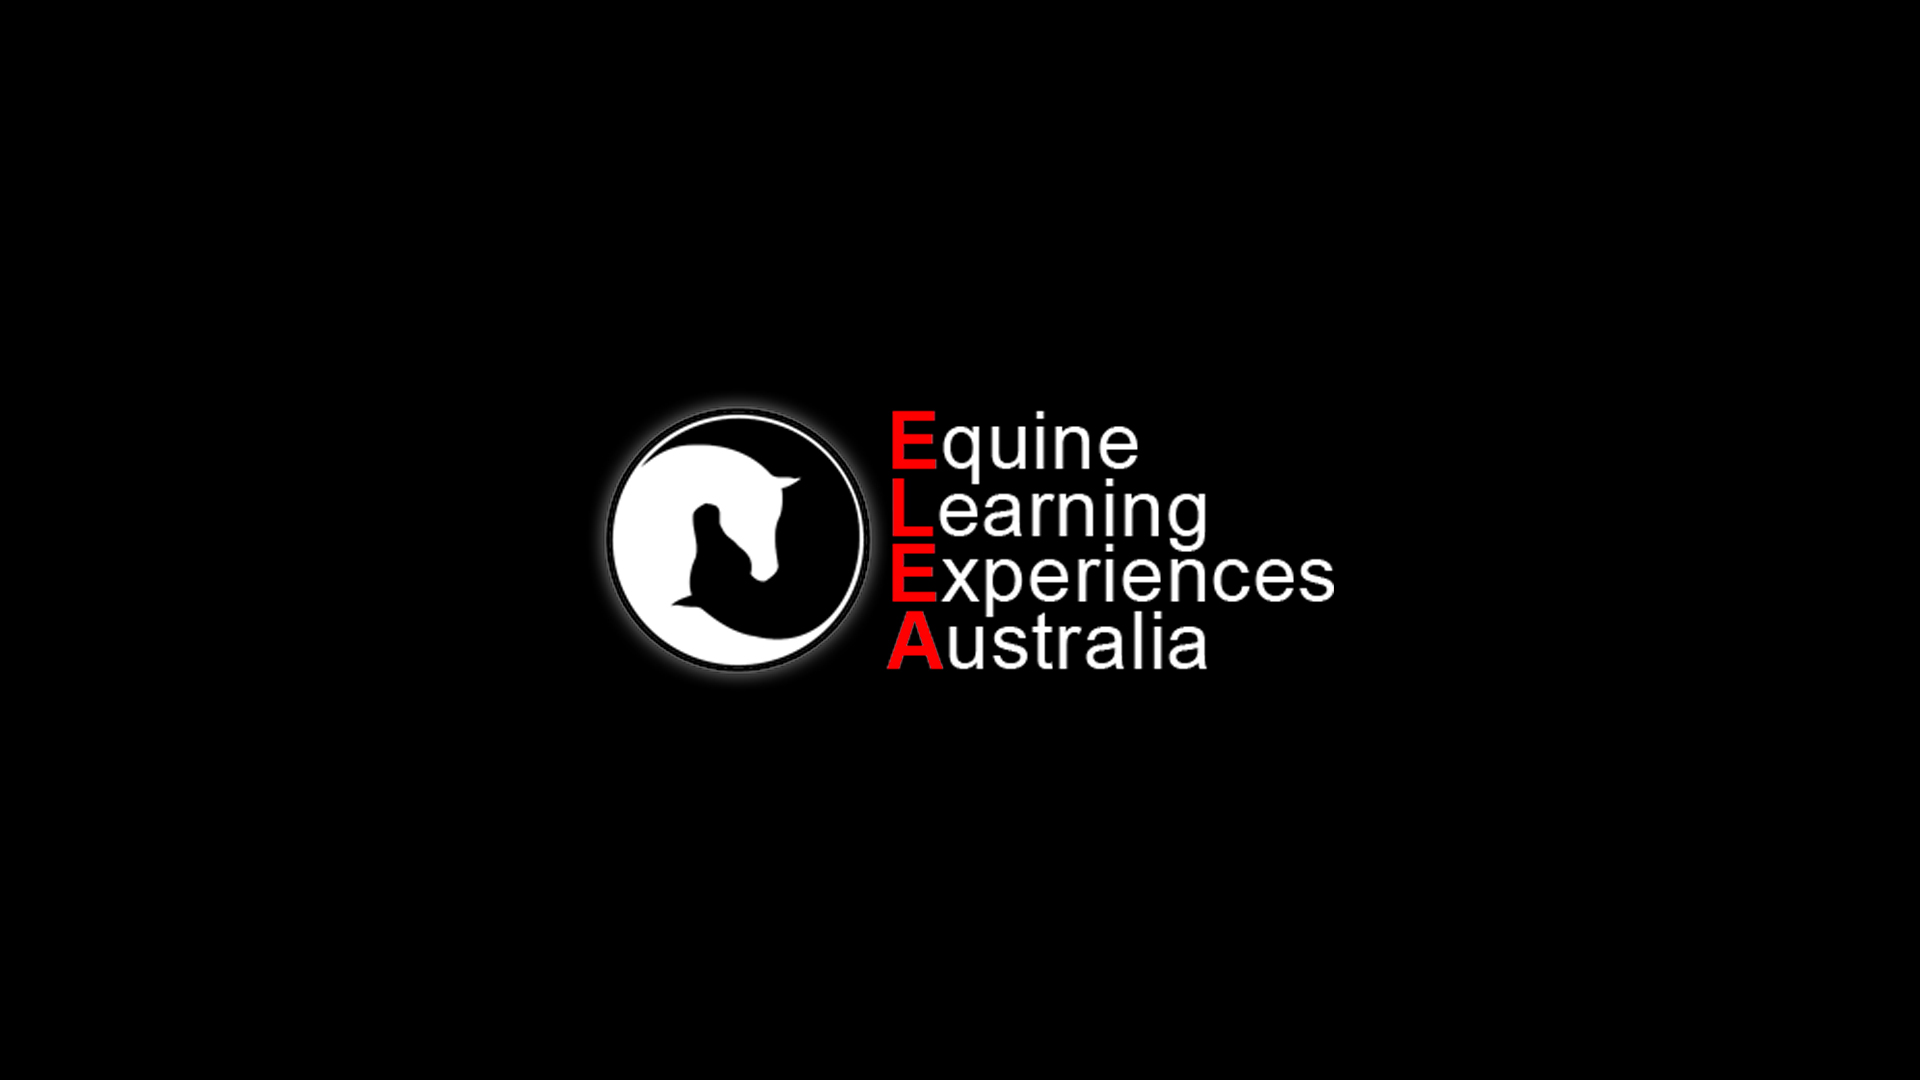 Equine Learning Experiences Australia | Case Study